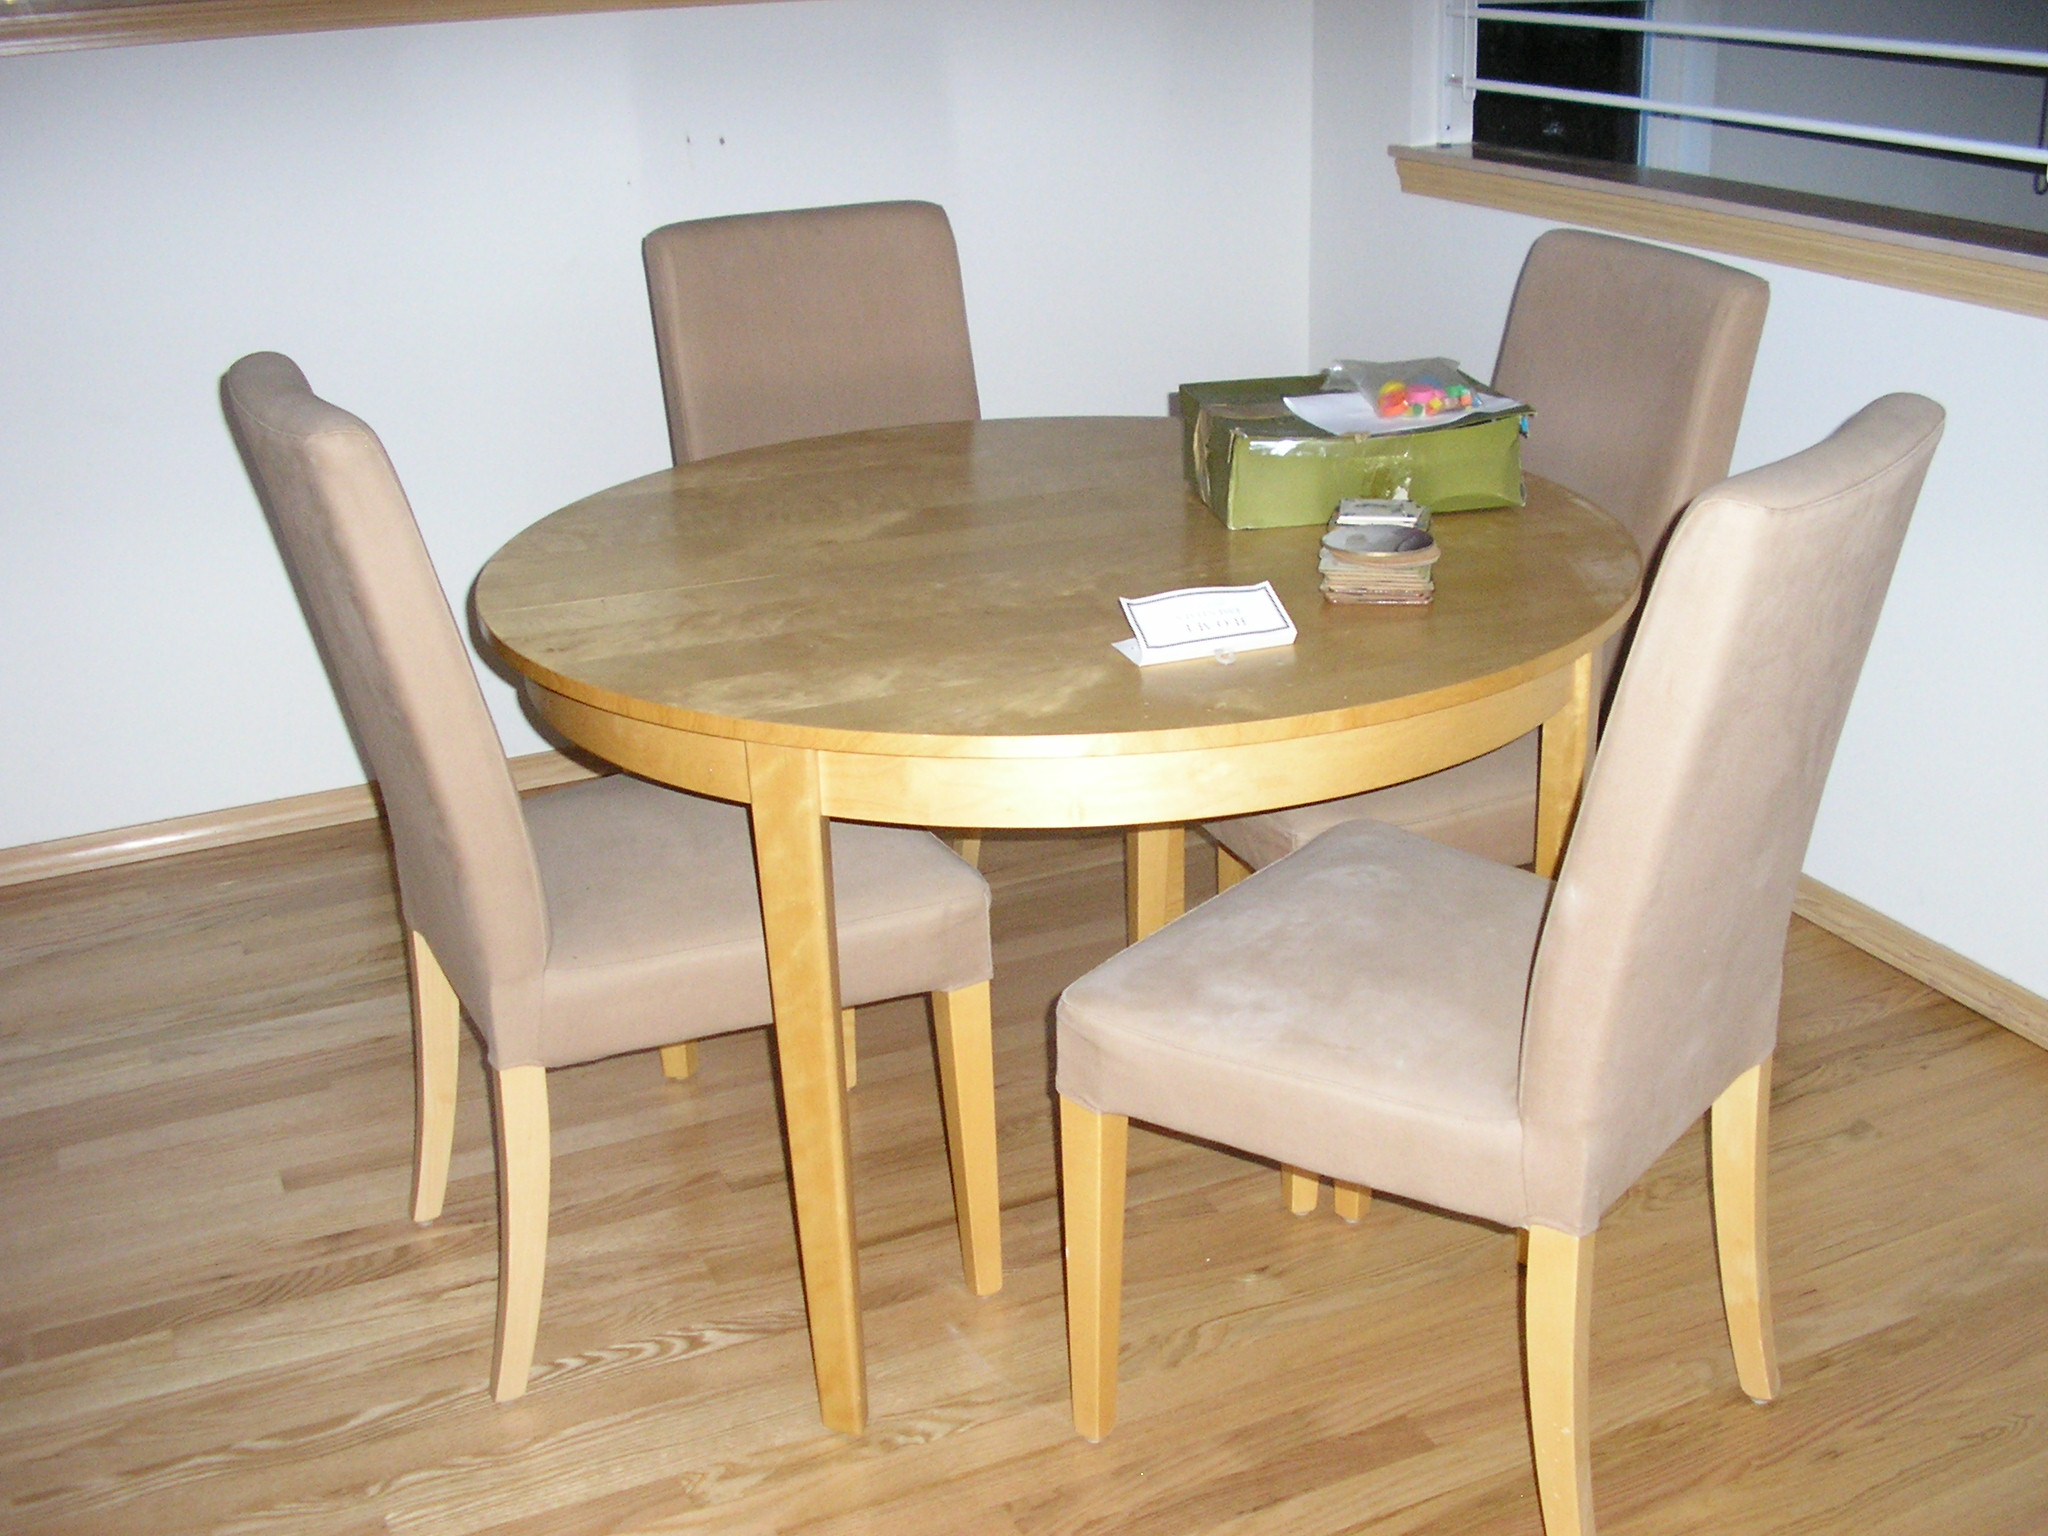 Round kitchen table and chairs set photo - 1